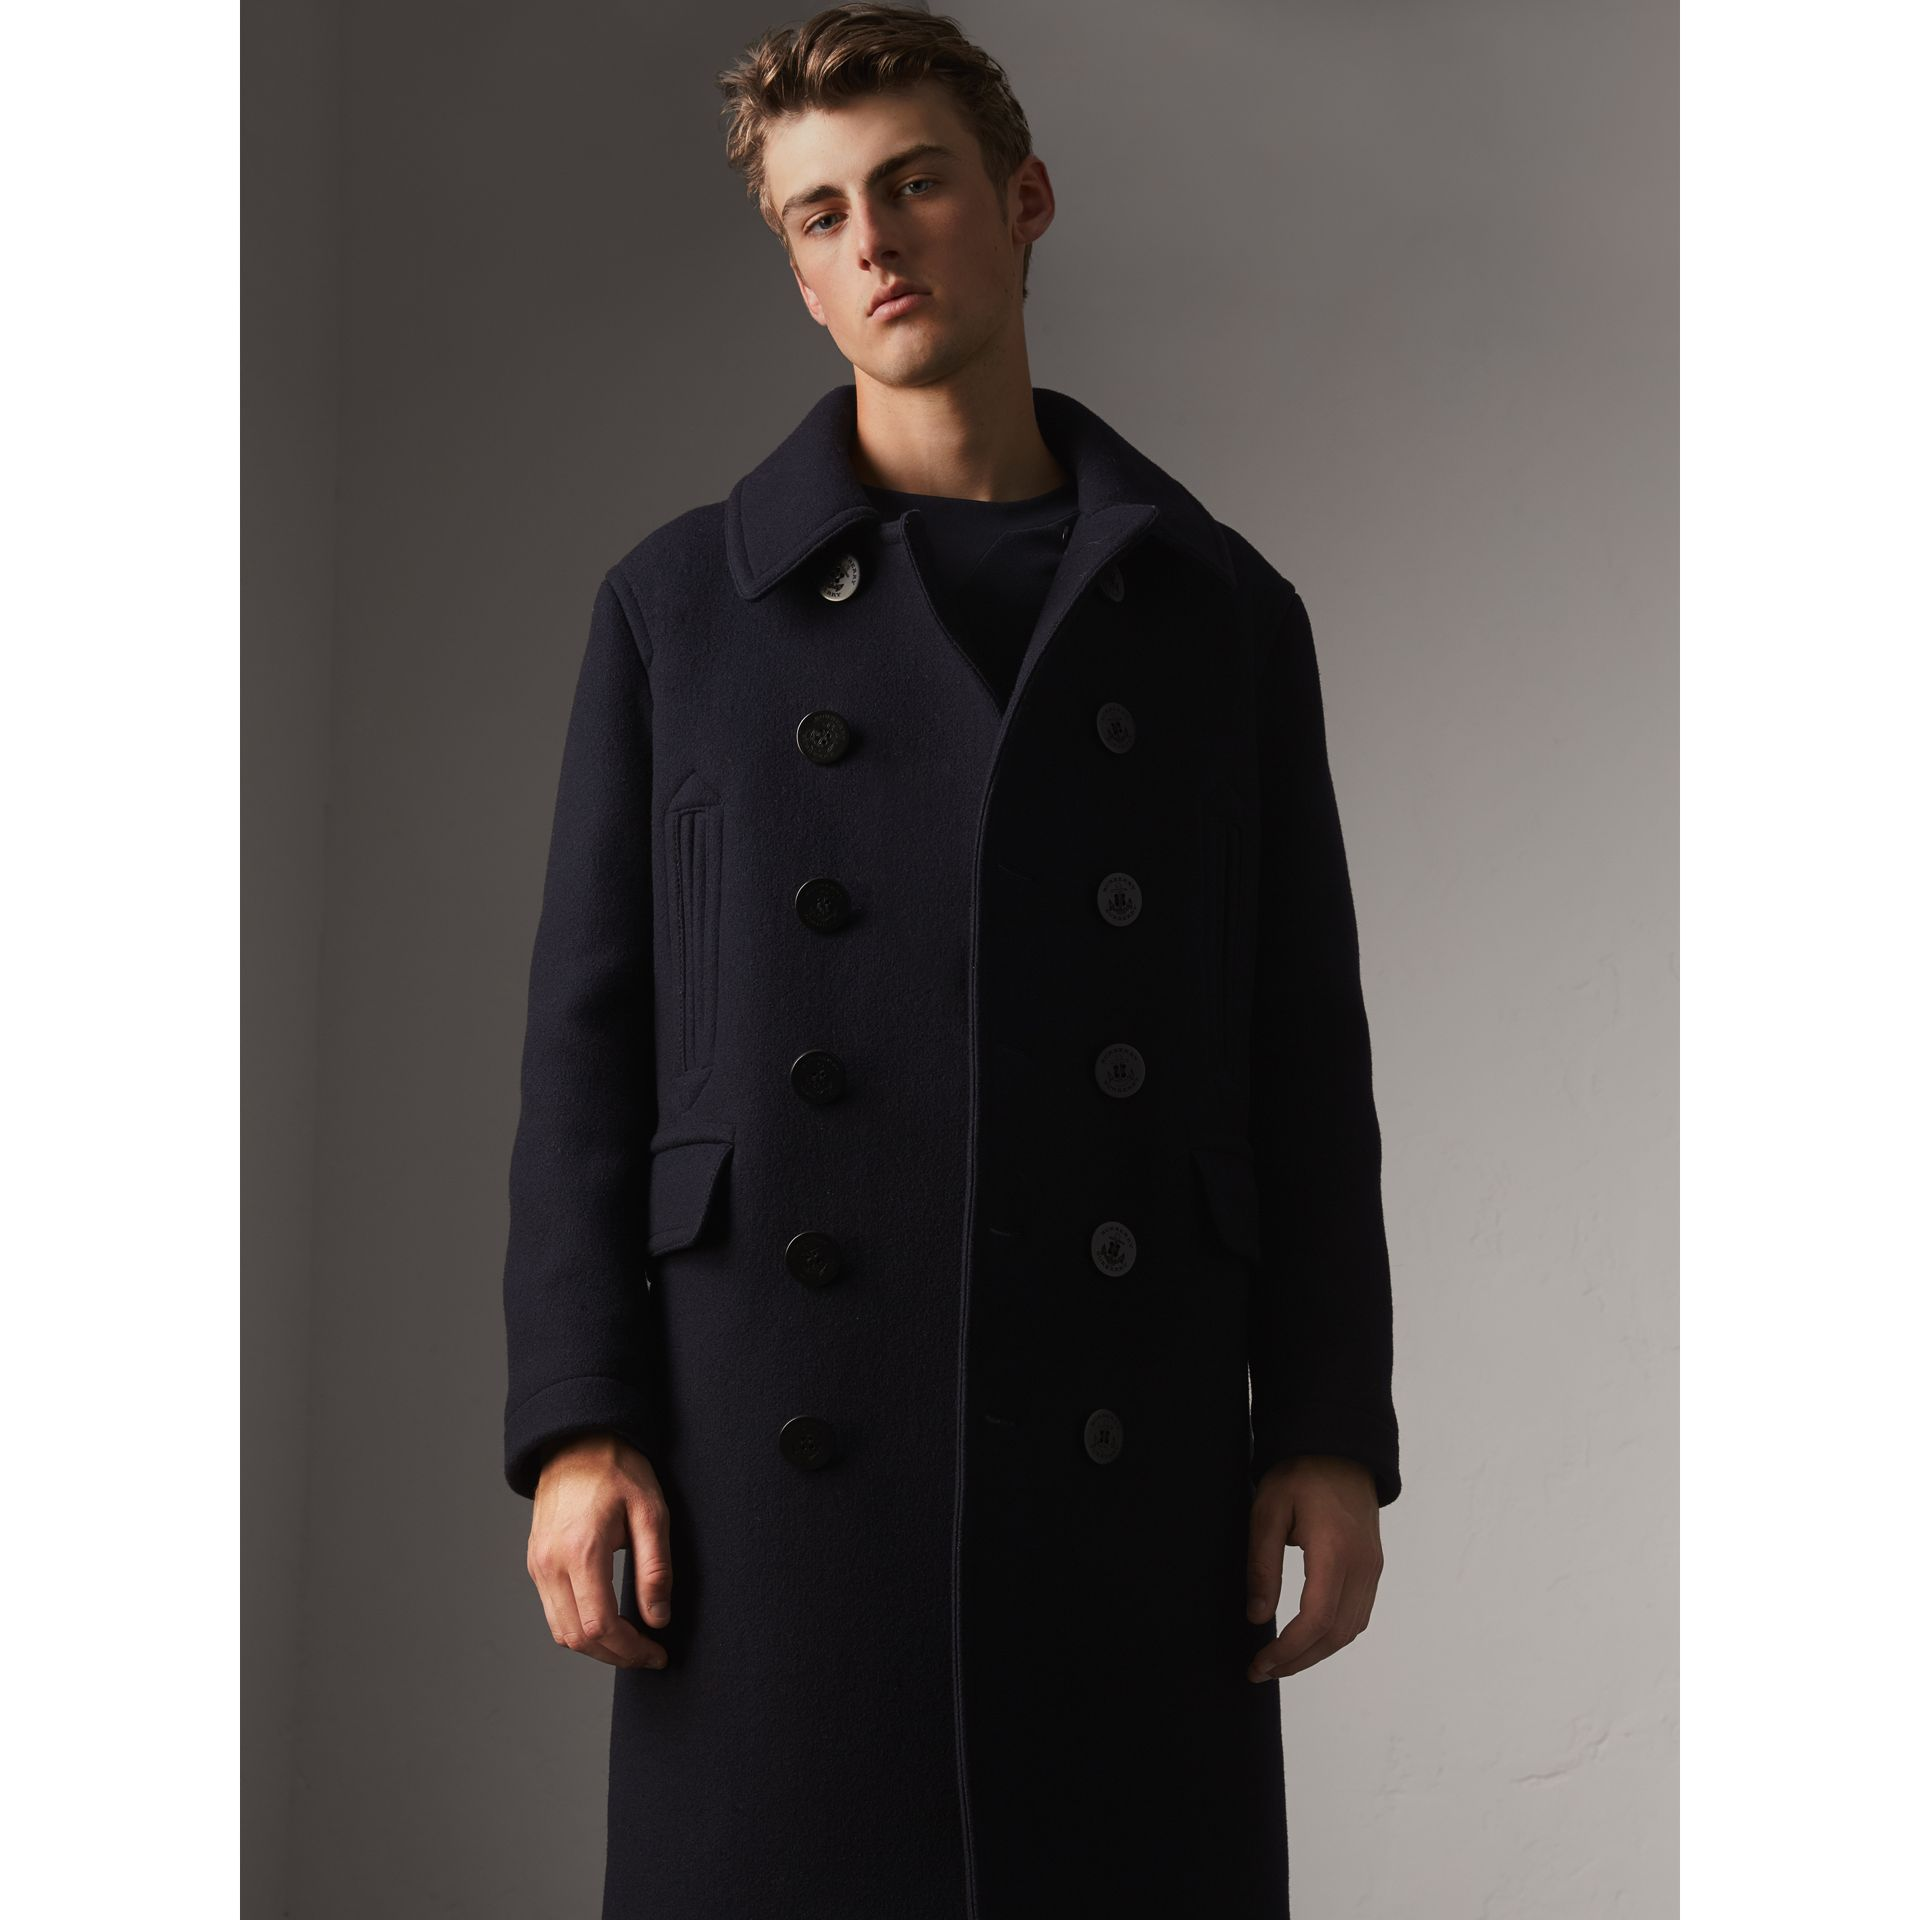 Wool Blend Double-breasted Coat in Navy - Men | Burberry - gallery image 5